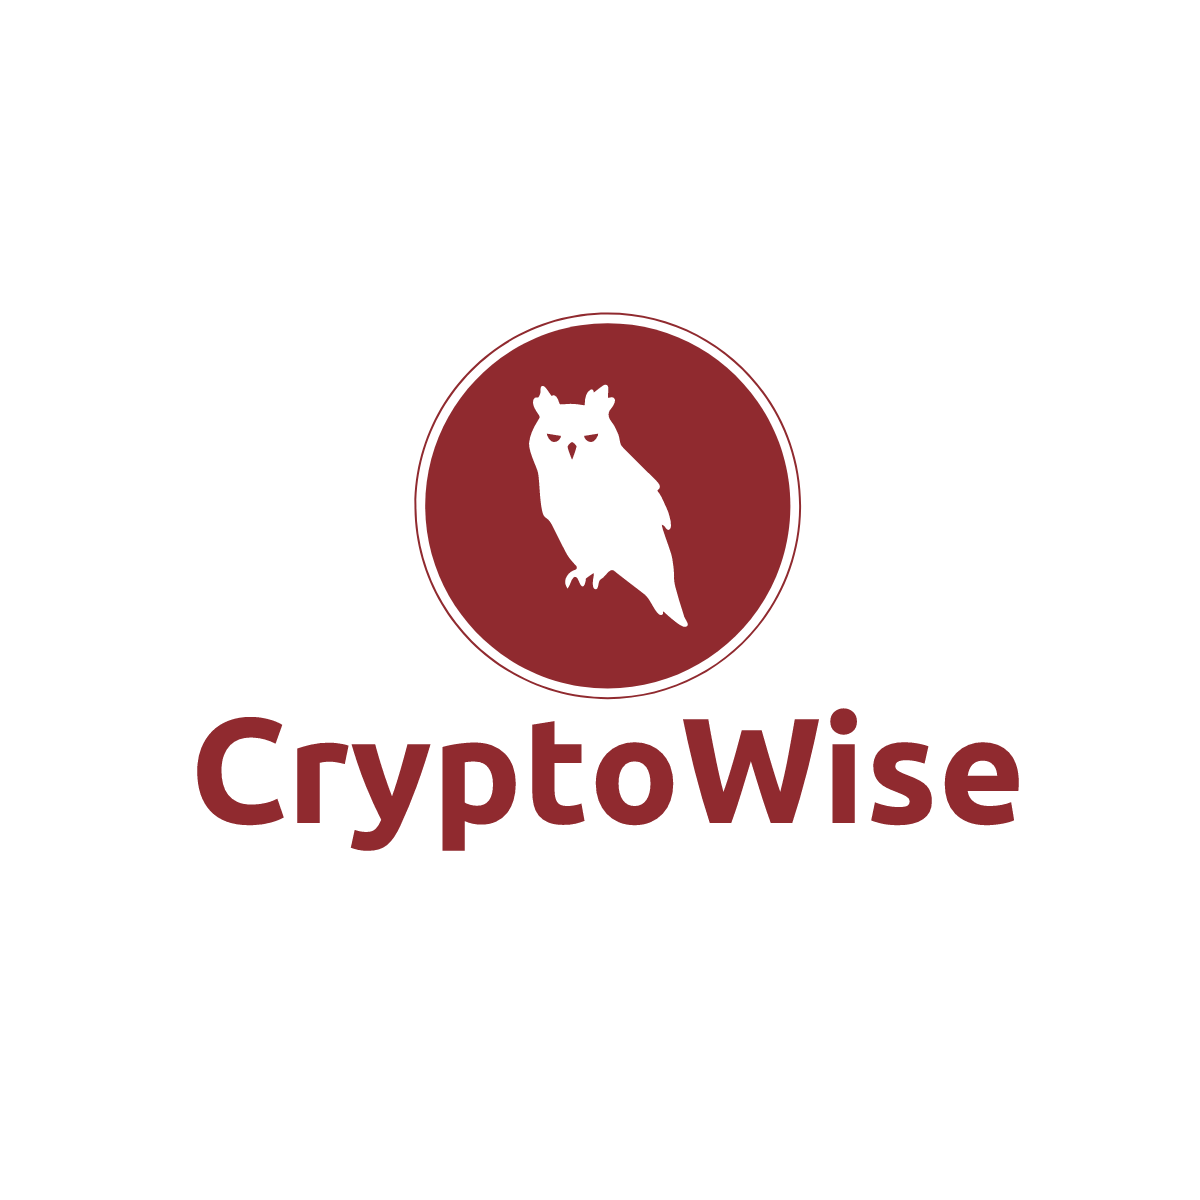 CryptoWise